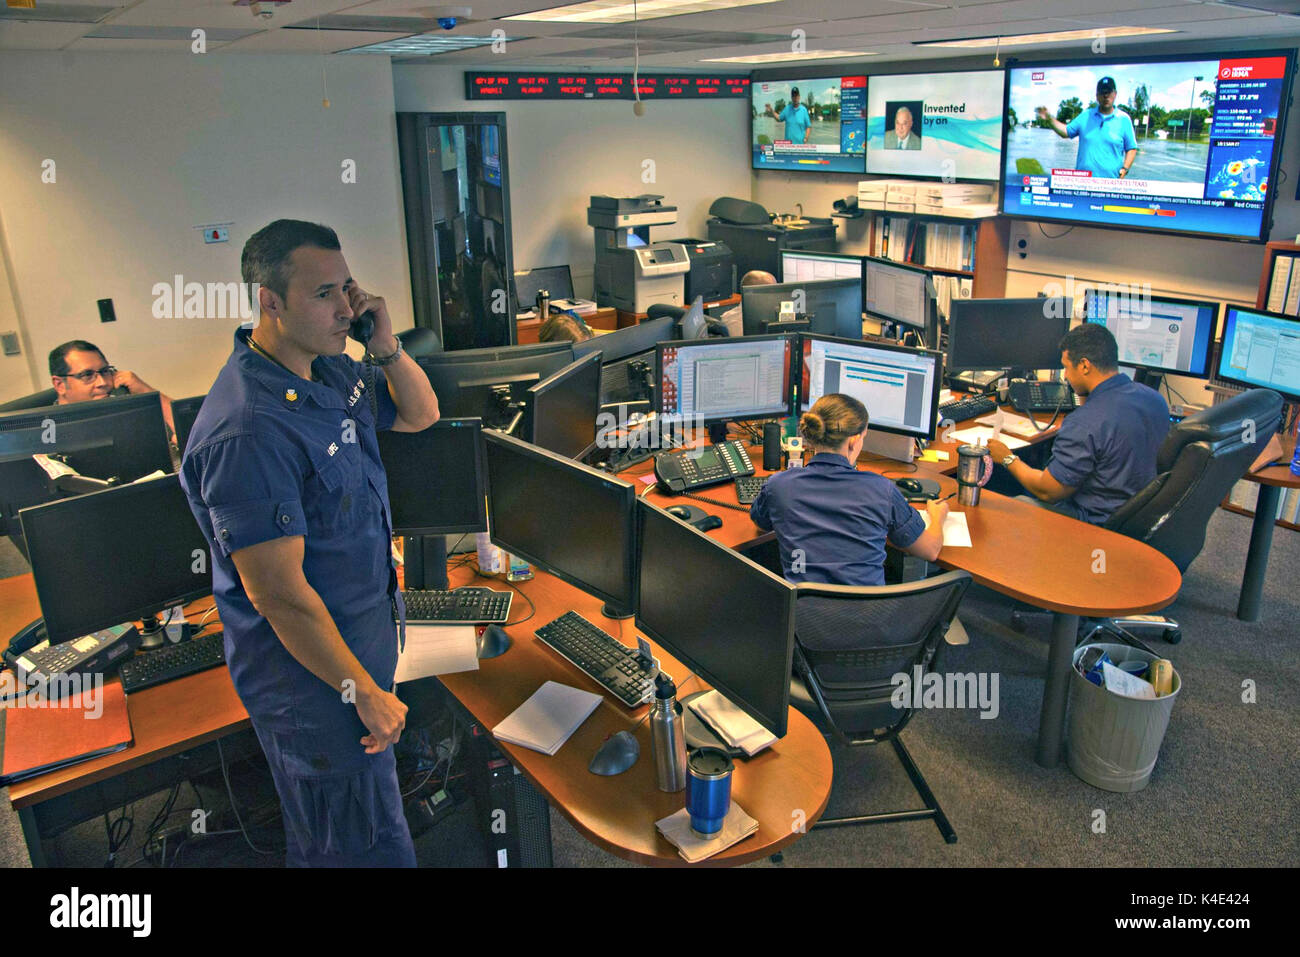 U.S. Coast Guard personnel monitor search and rescue for Hurricane Harvey victims from the Atlantic Area Command Center September 1, 2017 in Portsmouth, Virginia. The center had to step in to assist the high volume of emergency calls from the storm which overwhelmed local Texas regional operations. - Stock Image